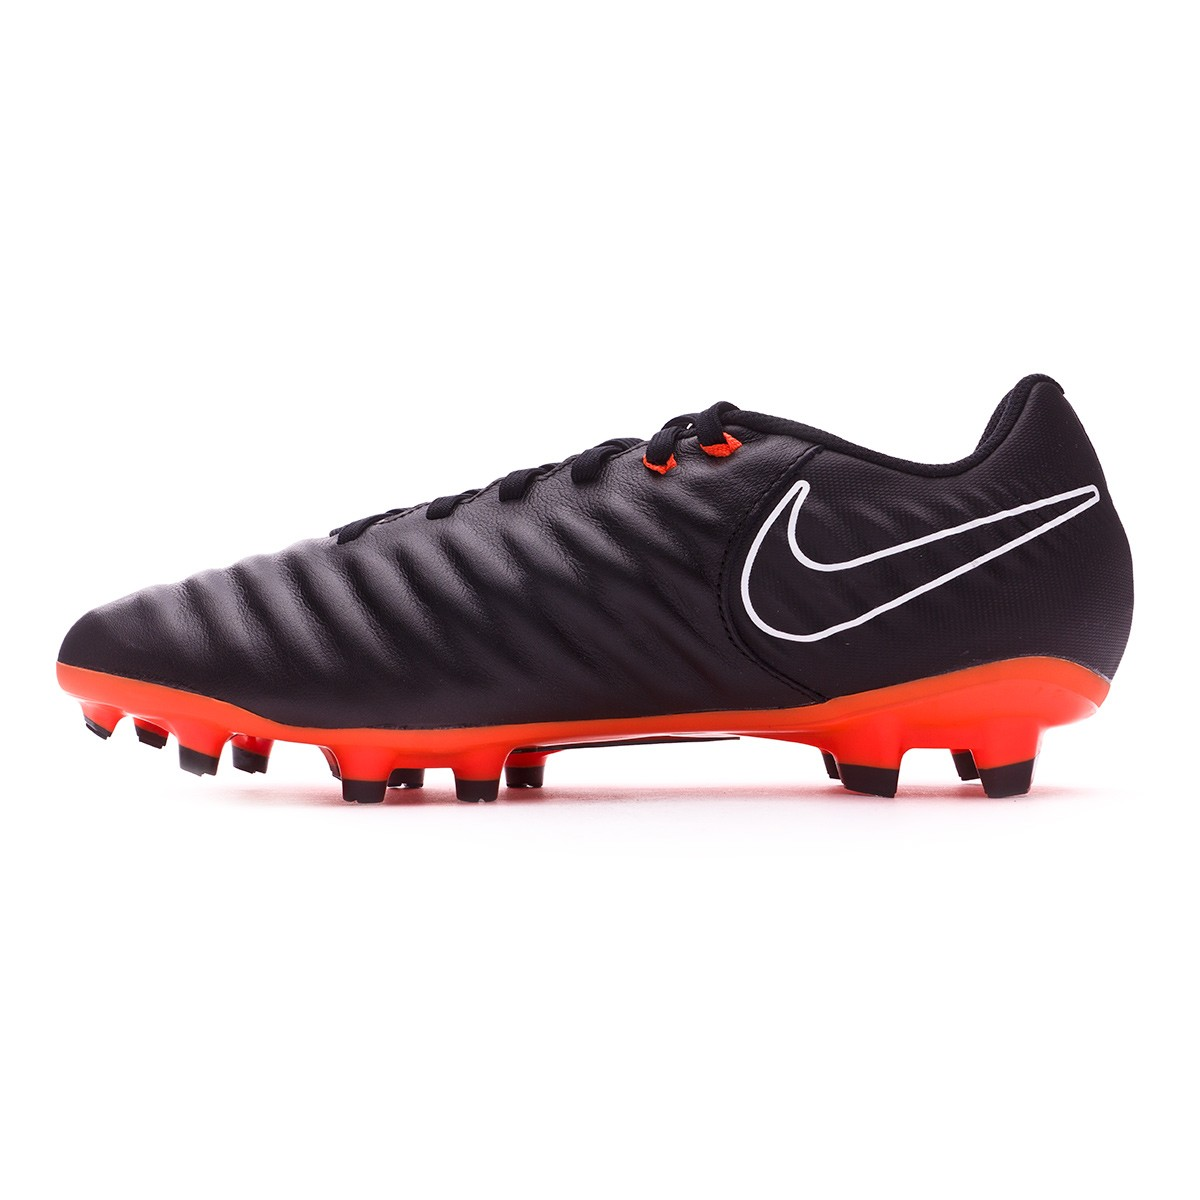 1093ca5cf84ef Football Boots Nike Tiempo Legend VII Academy FG Black-Total orange-White -  Tienda de fútbol Fútbol Emotion